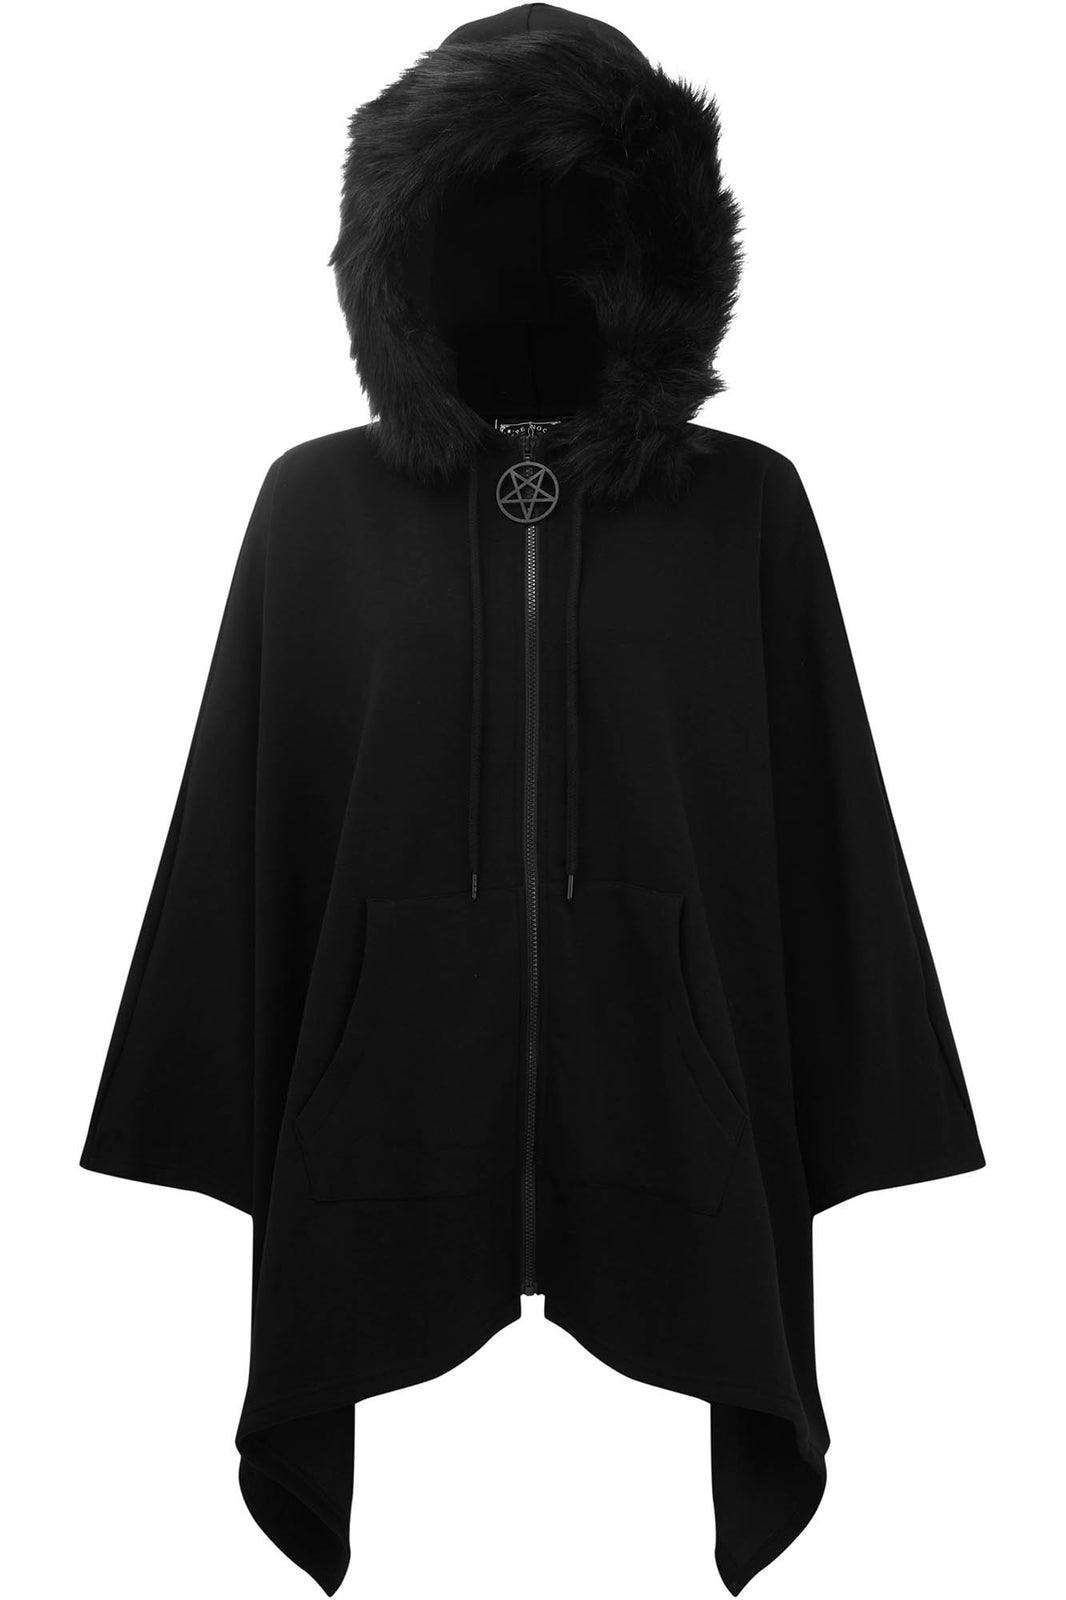 Enchanter Hooded Coat